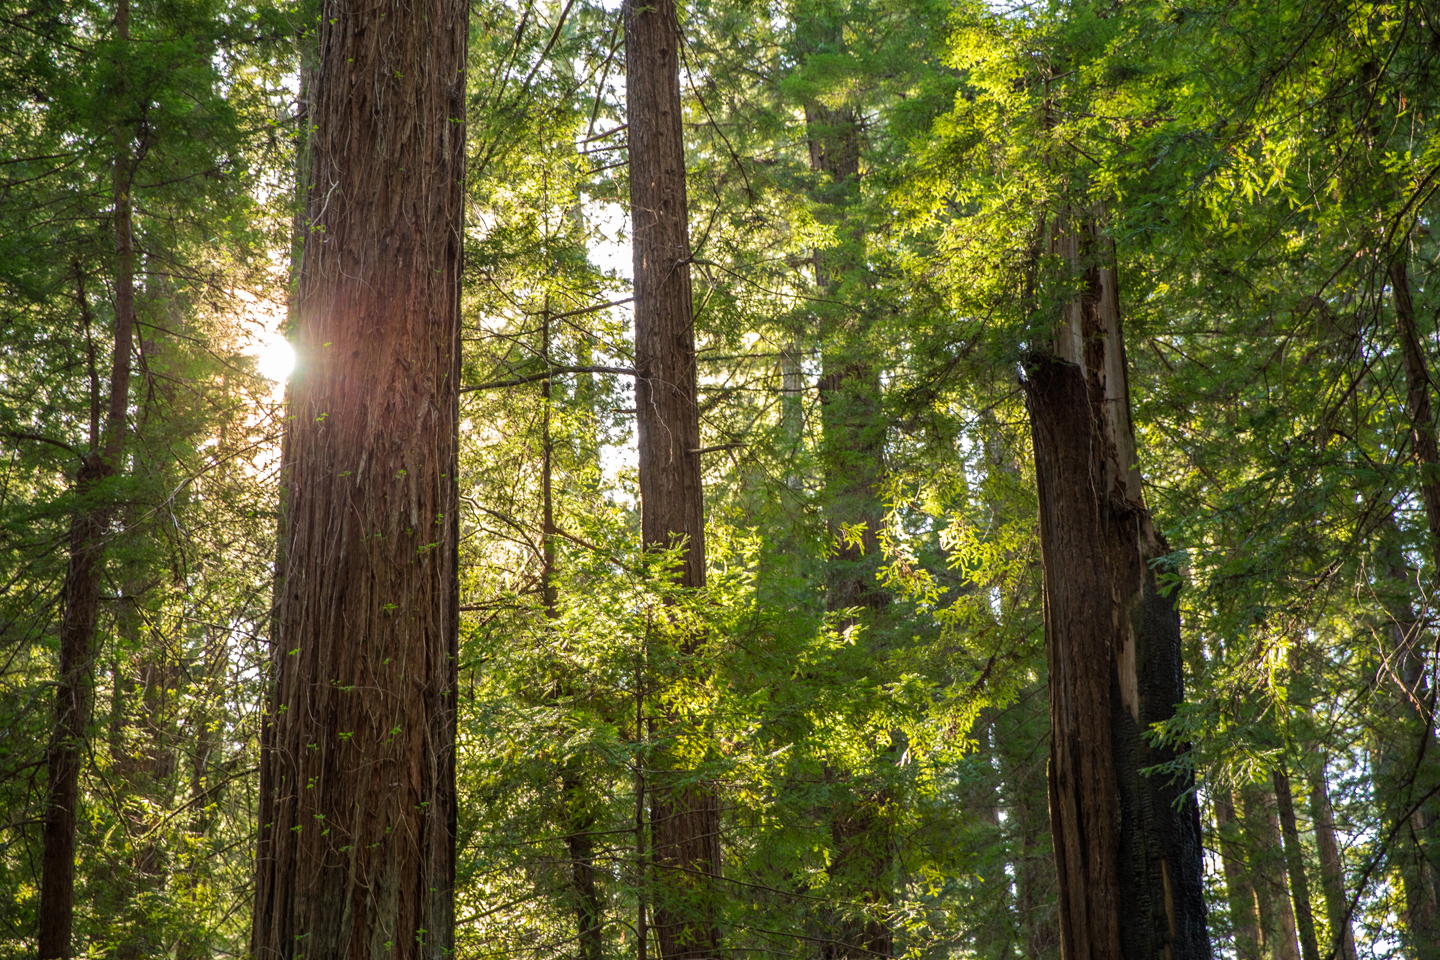 Road Trip to Redwood National and State Parks